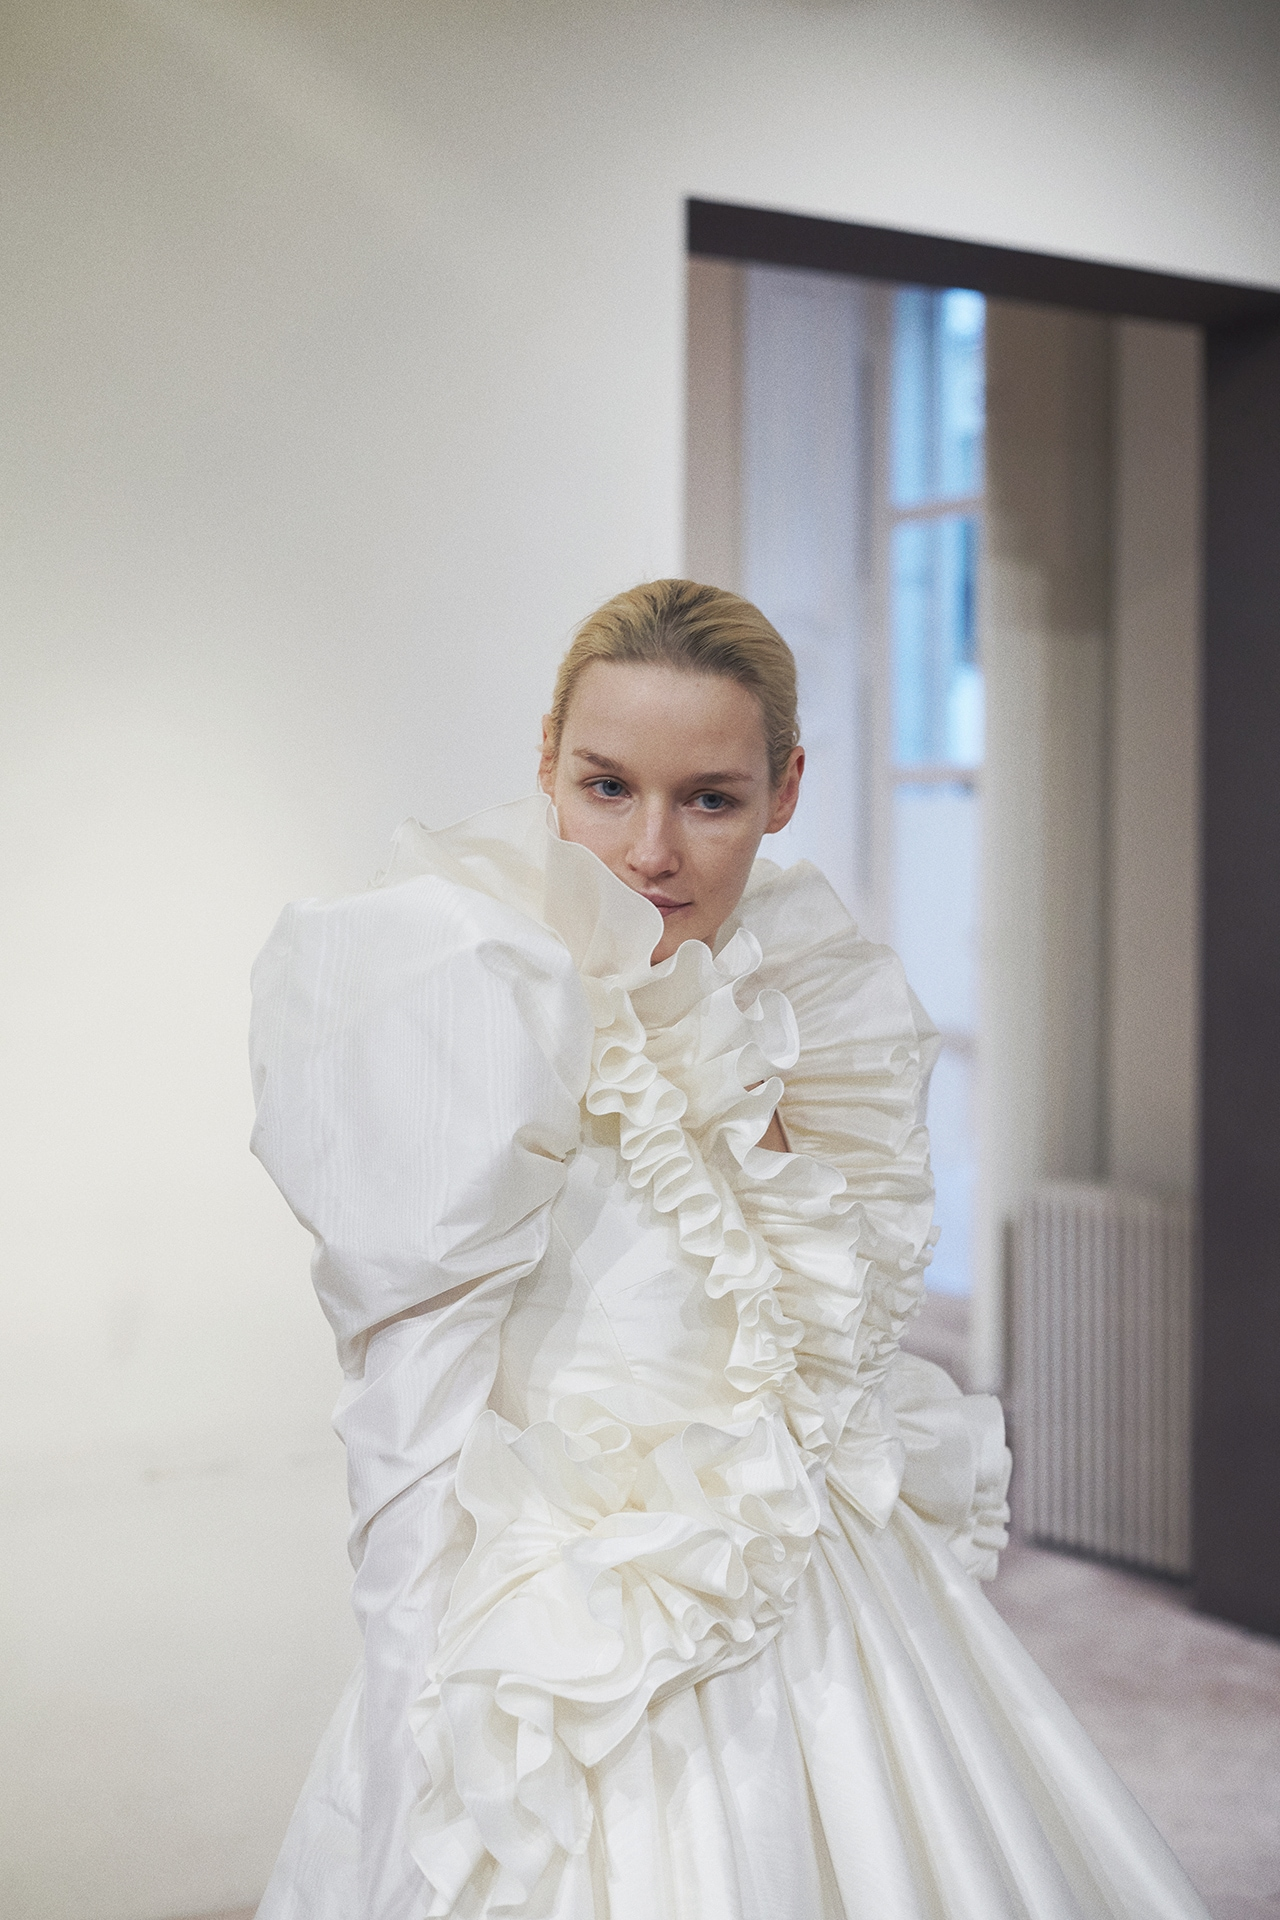 A masterclass in haute couture with Giambattista Valli